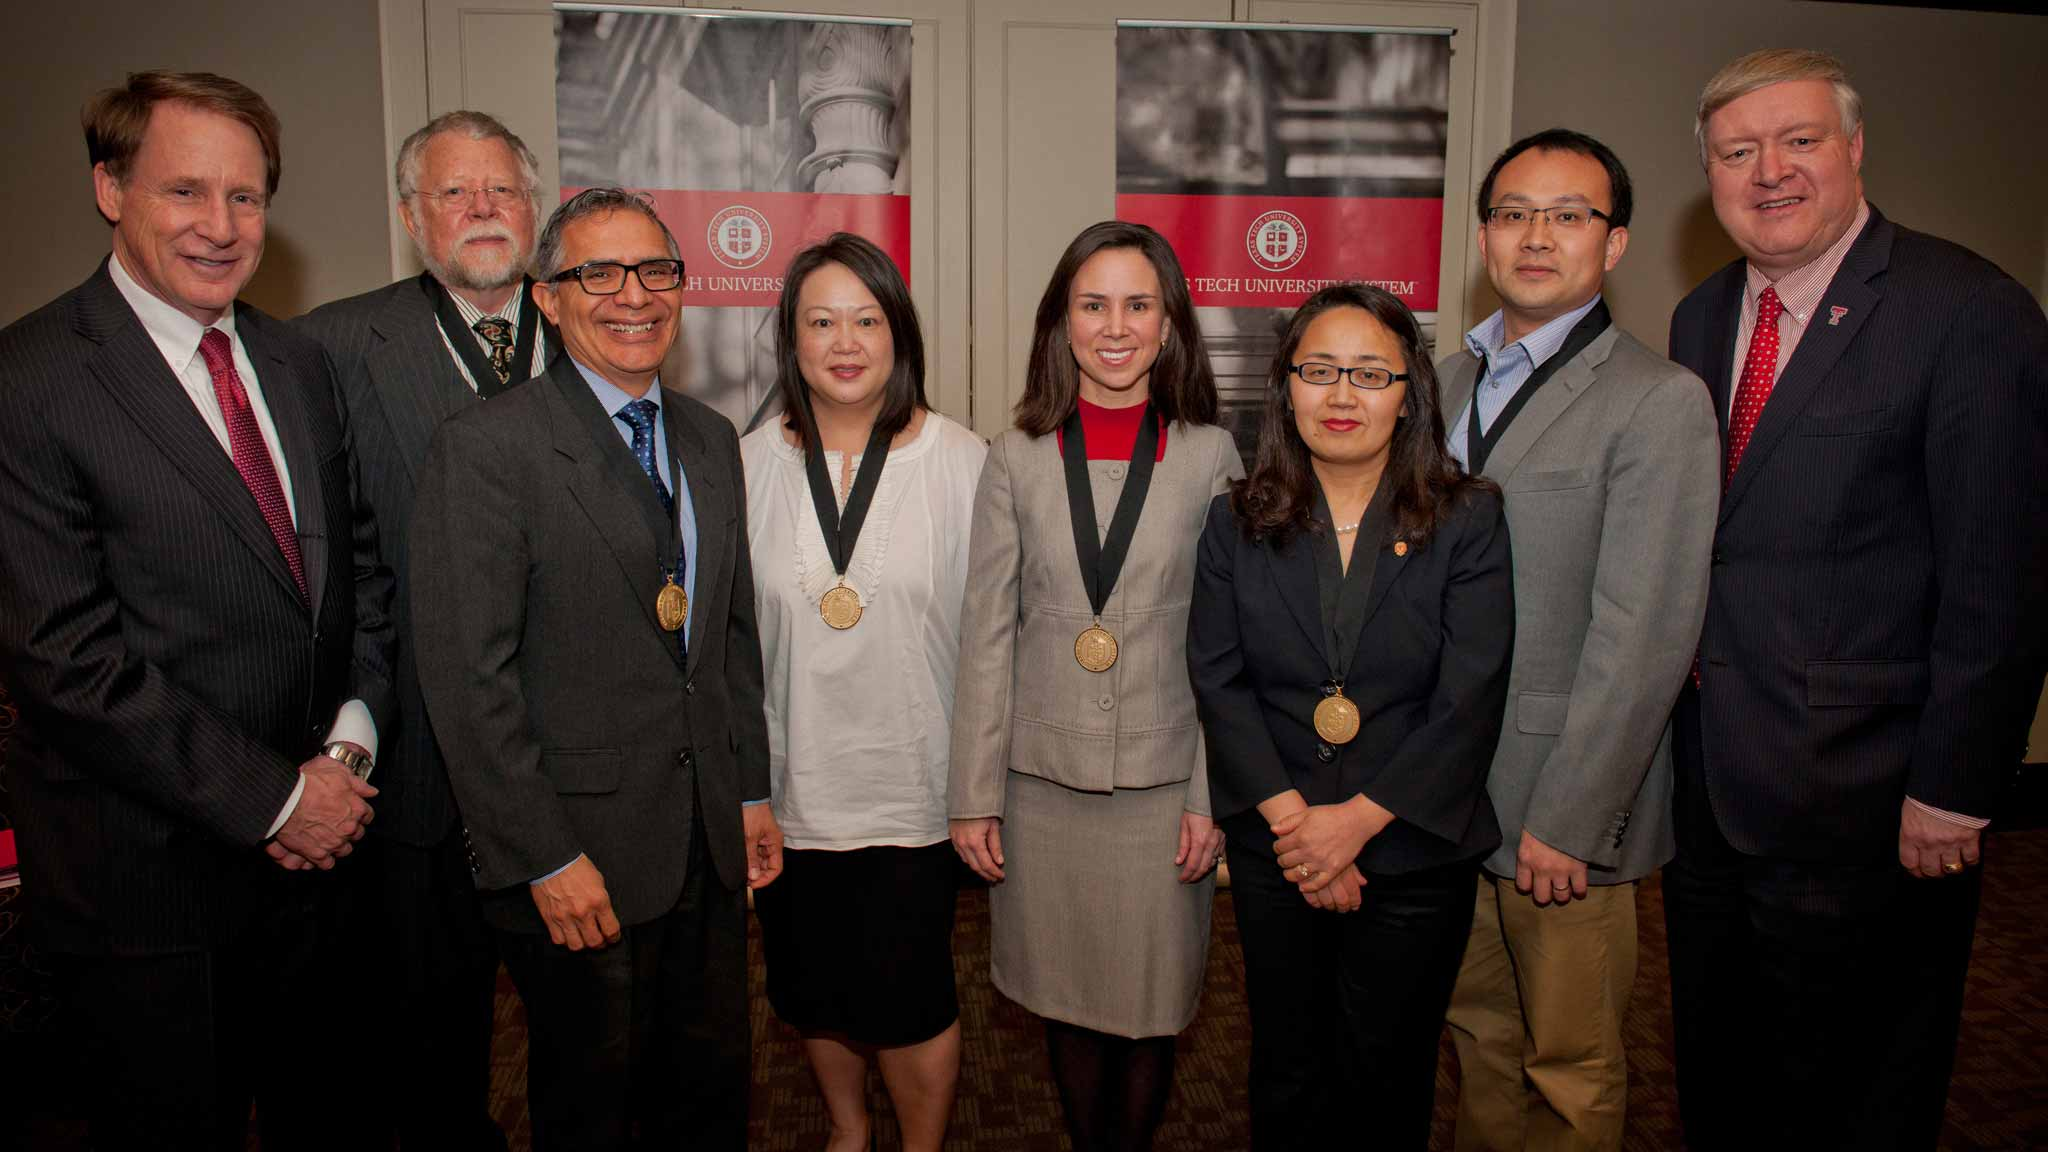 Texas Tech University distinguished faculty award recipients